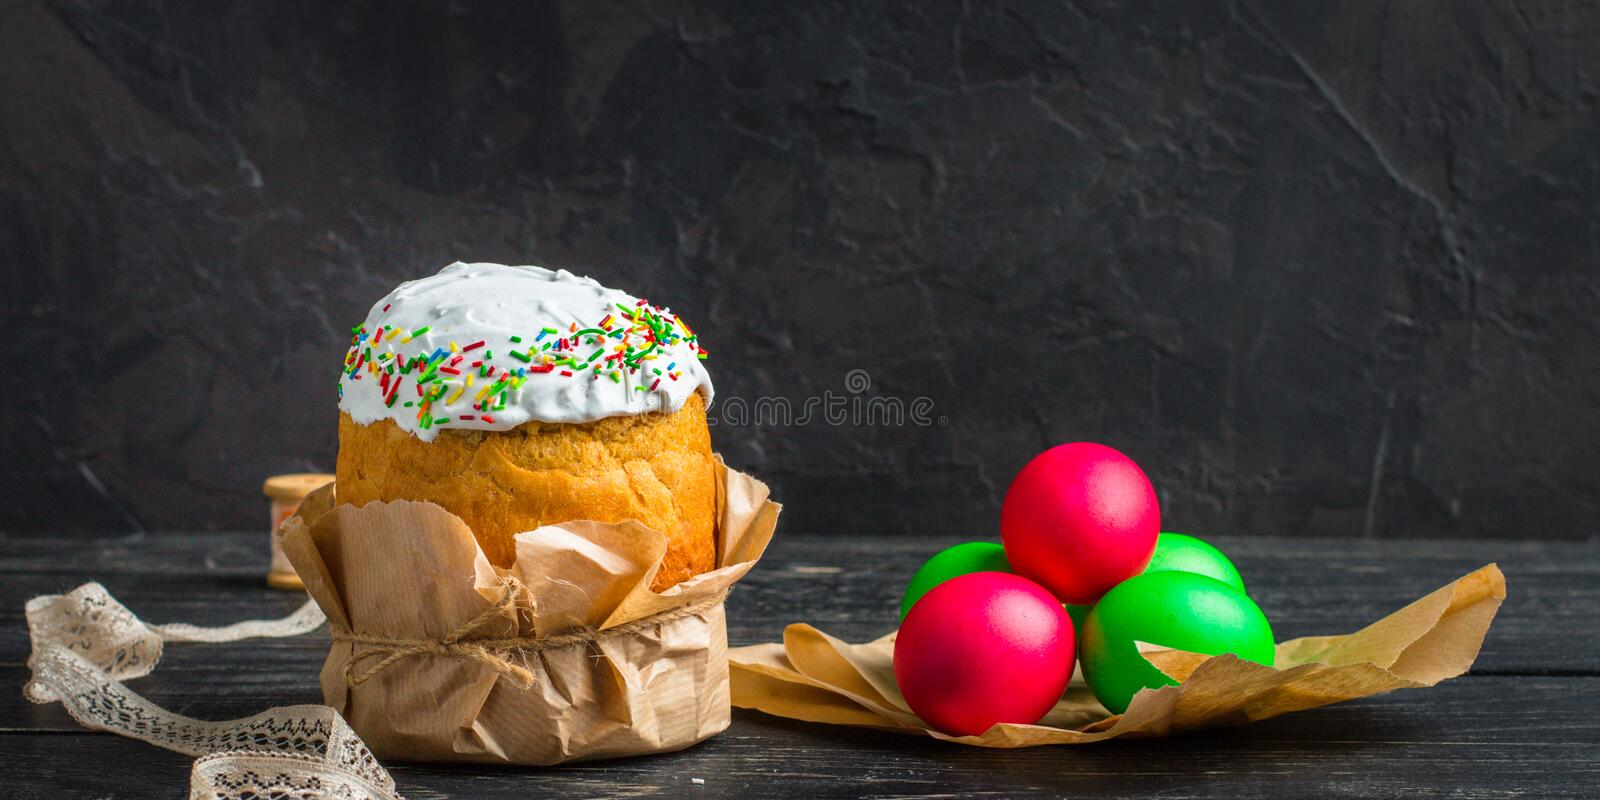 Easter cake and Easter eggs, traditional holiday attributes Happy Easter!. food background. dark background. top stock photography